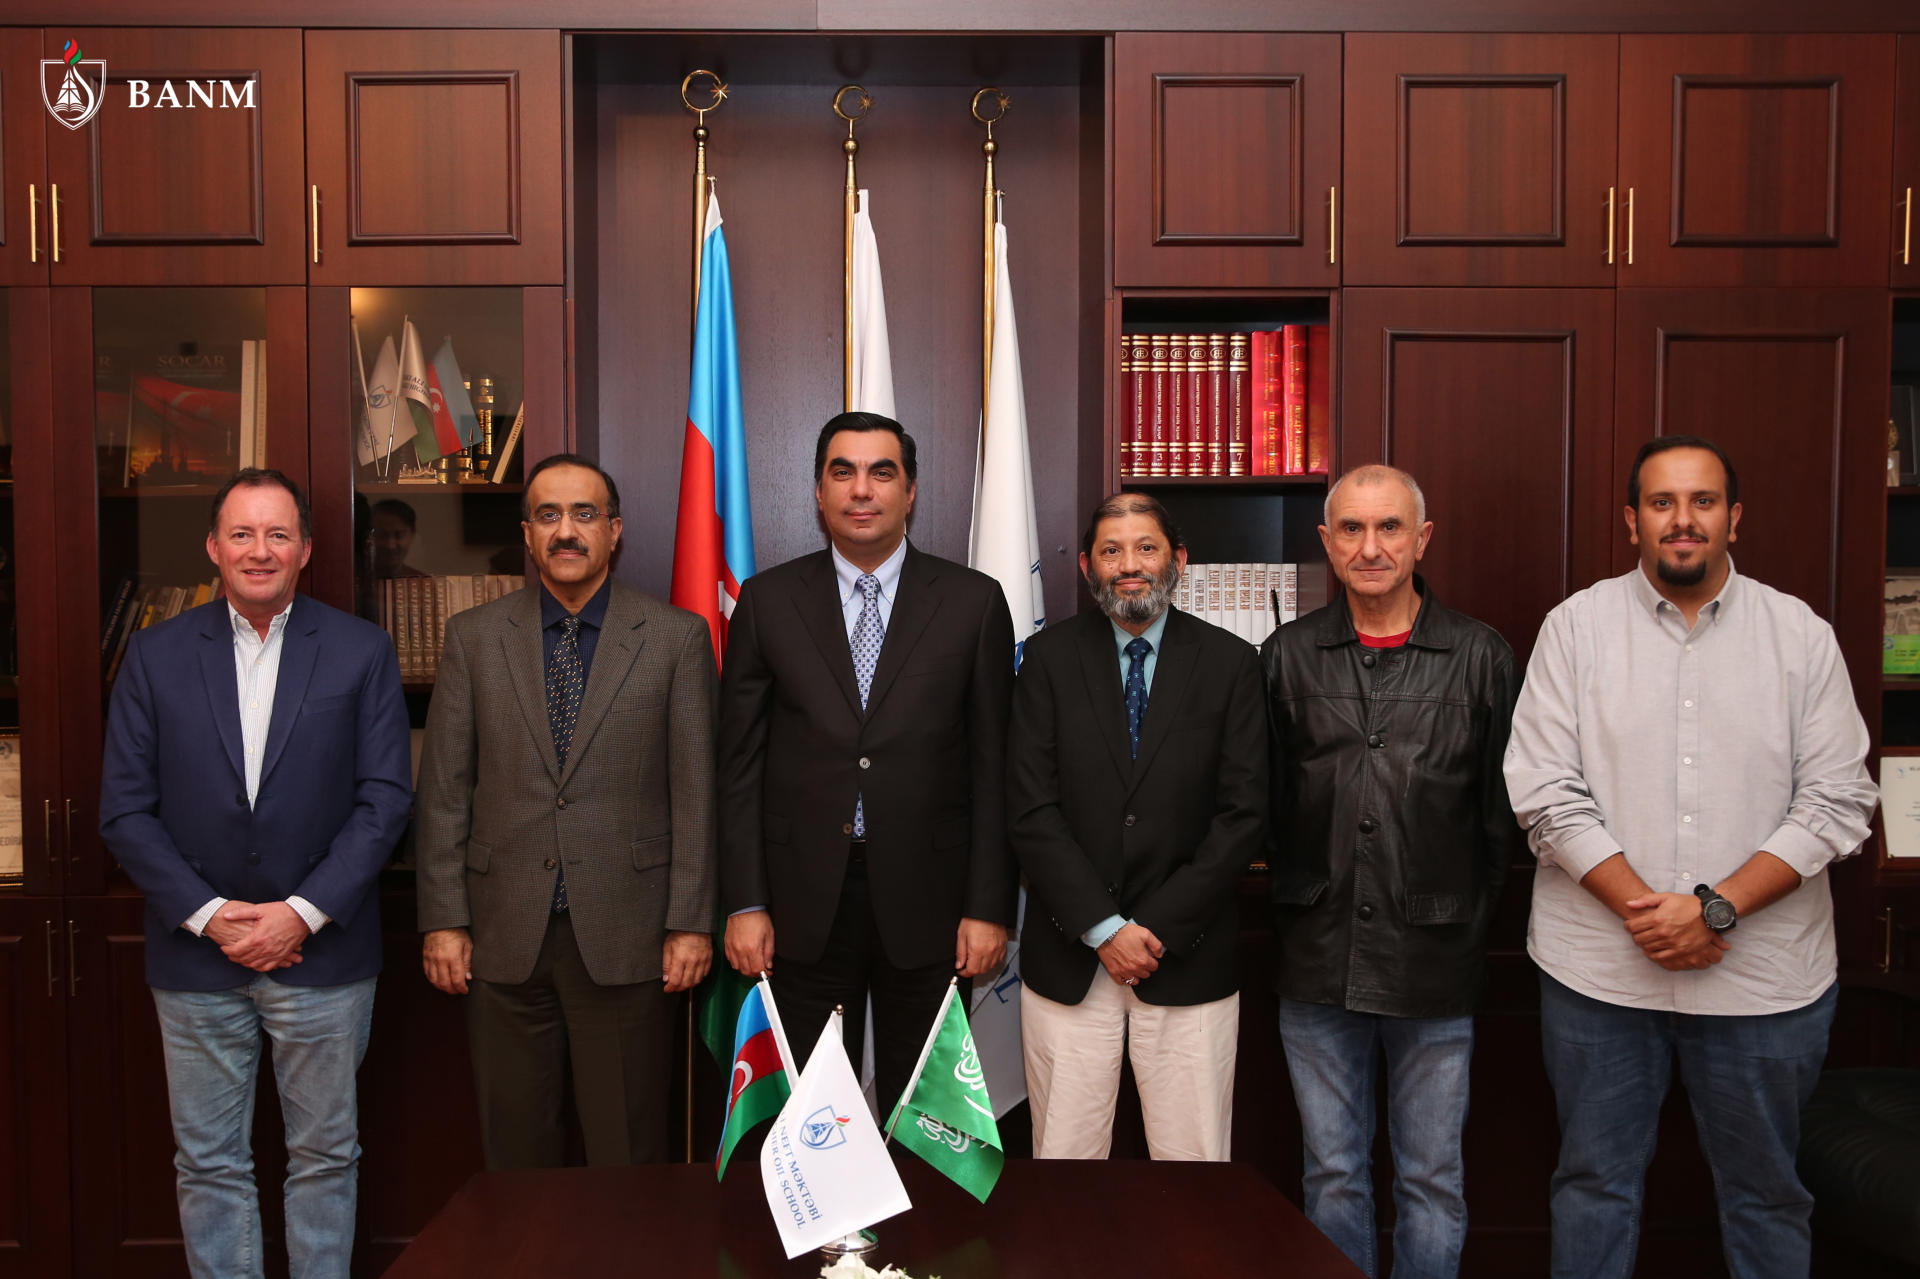 Baku Higher Oil School hosts meeting with representatives of Saudi Arabia's University of Petroleum & Minerals (PHOTO)